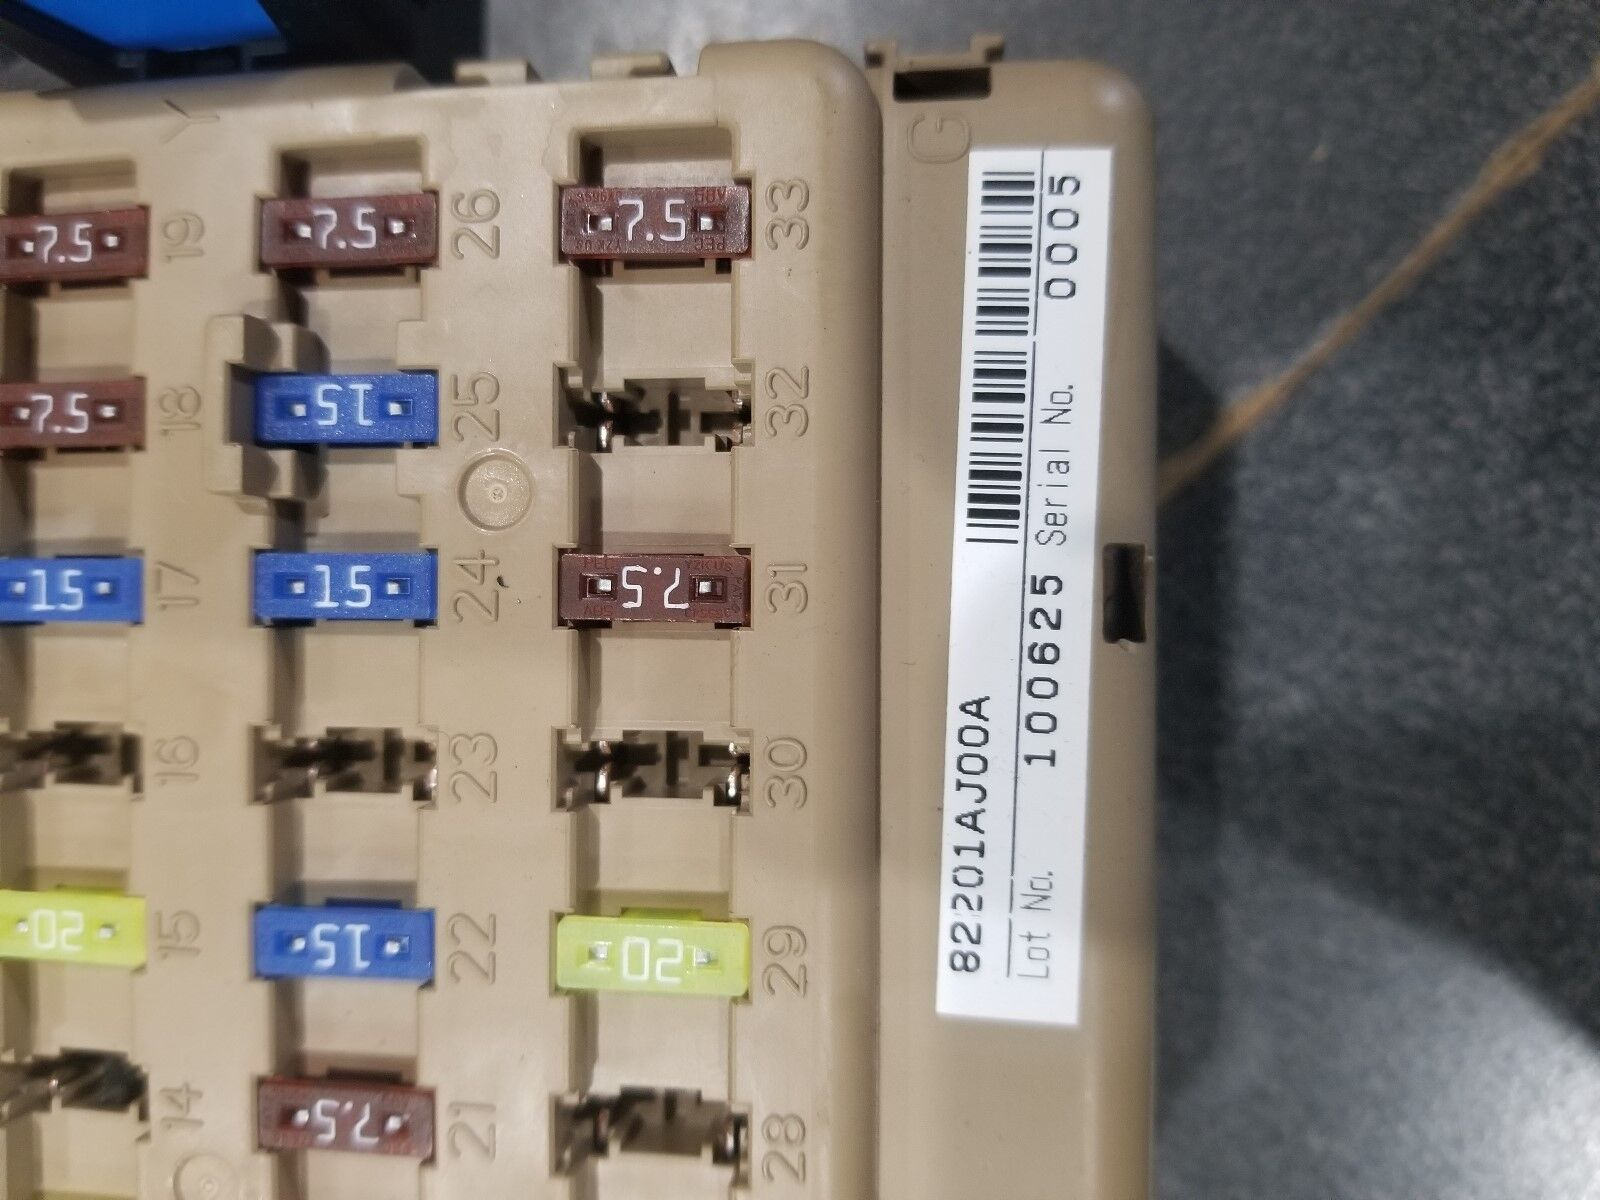 Used 2011 Subaru Outback Computers Chips Cruise Control And Fuses Related Parts For Sale